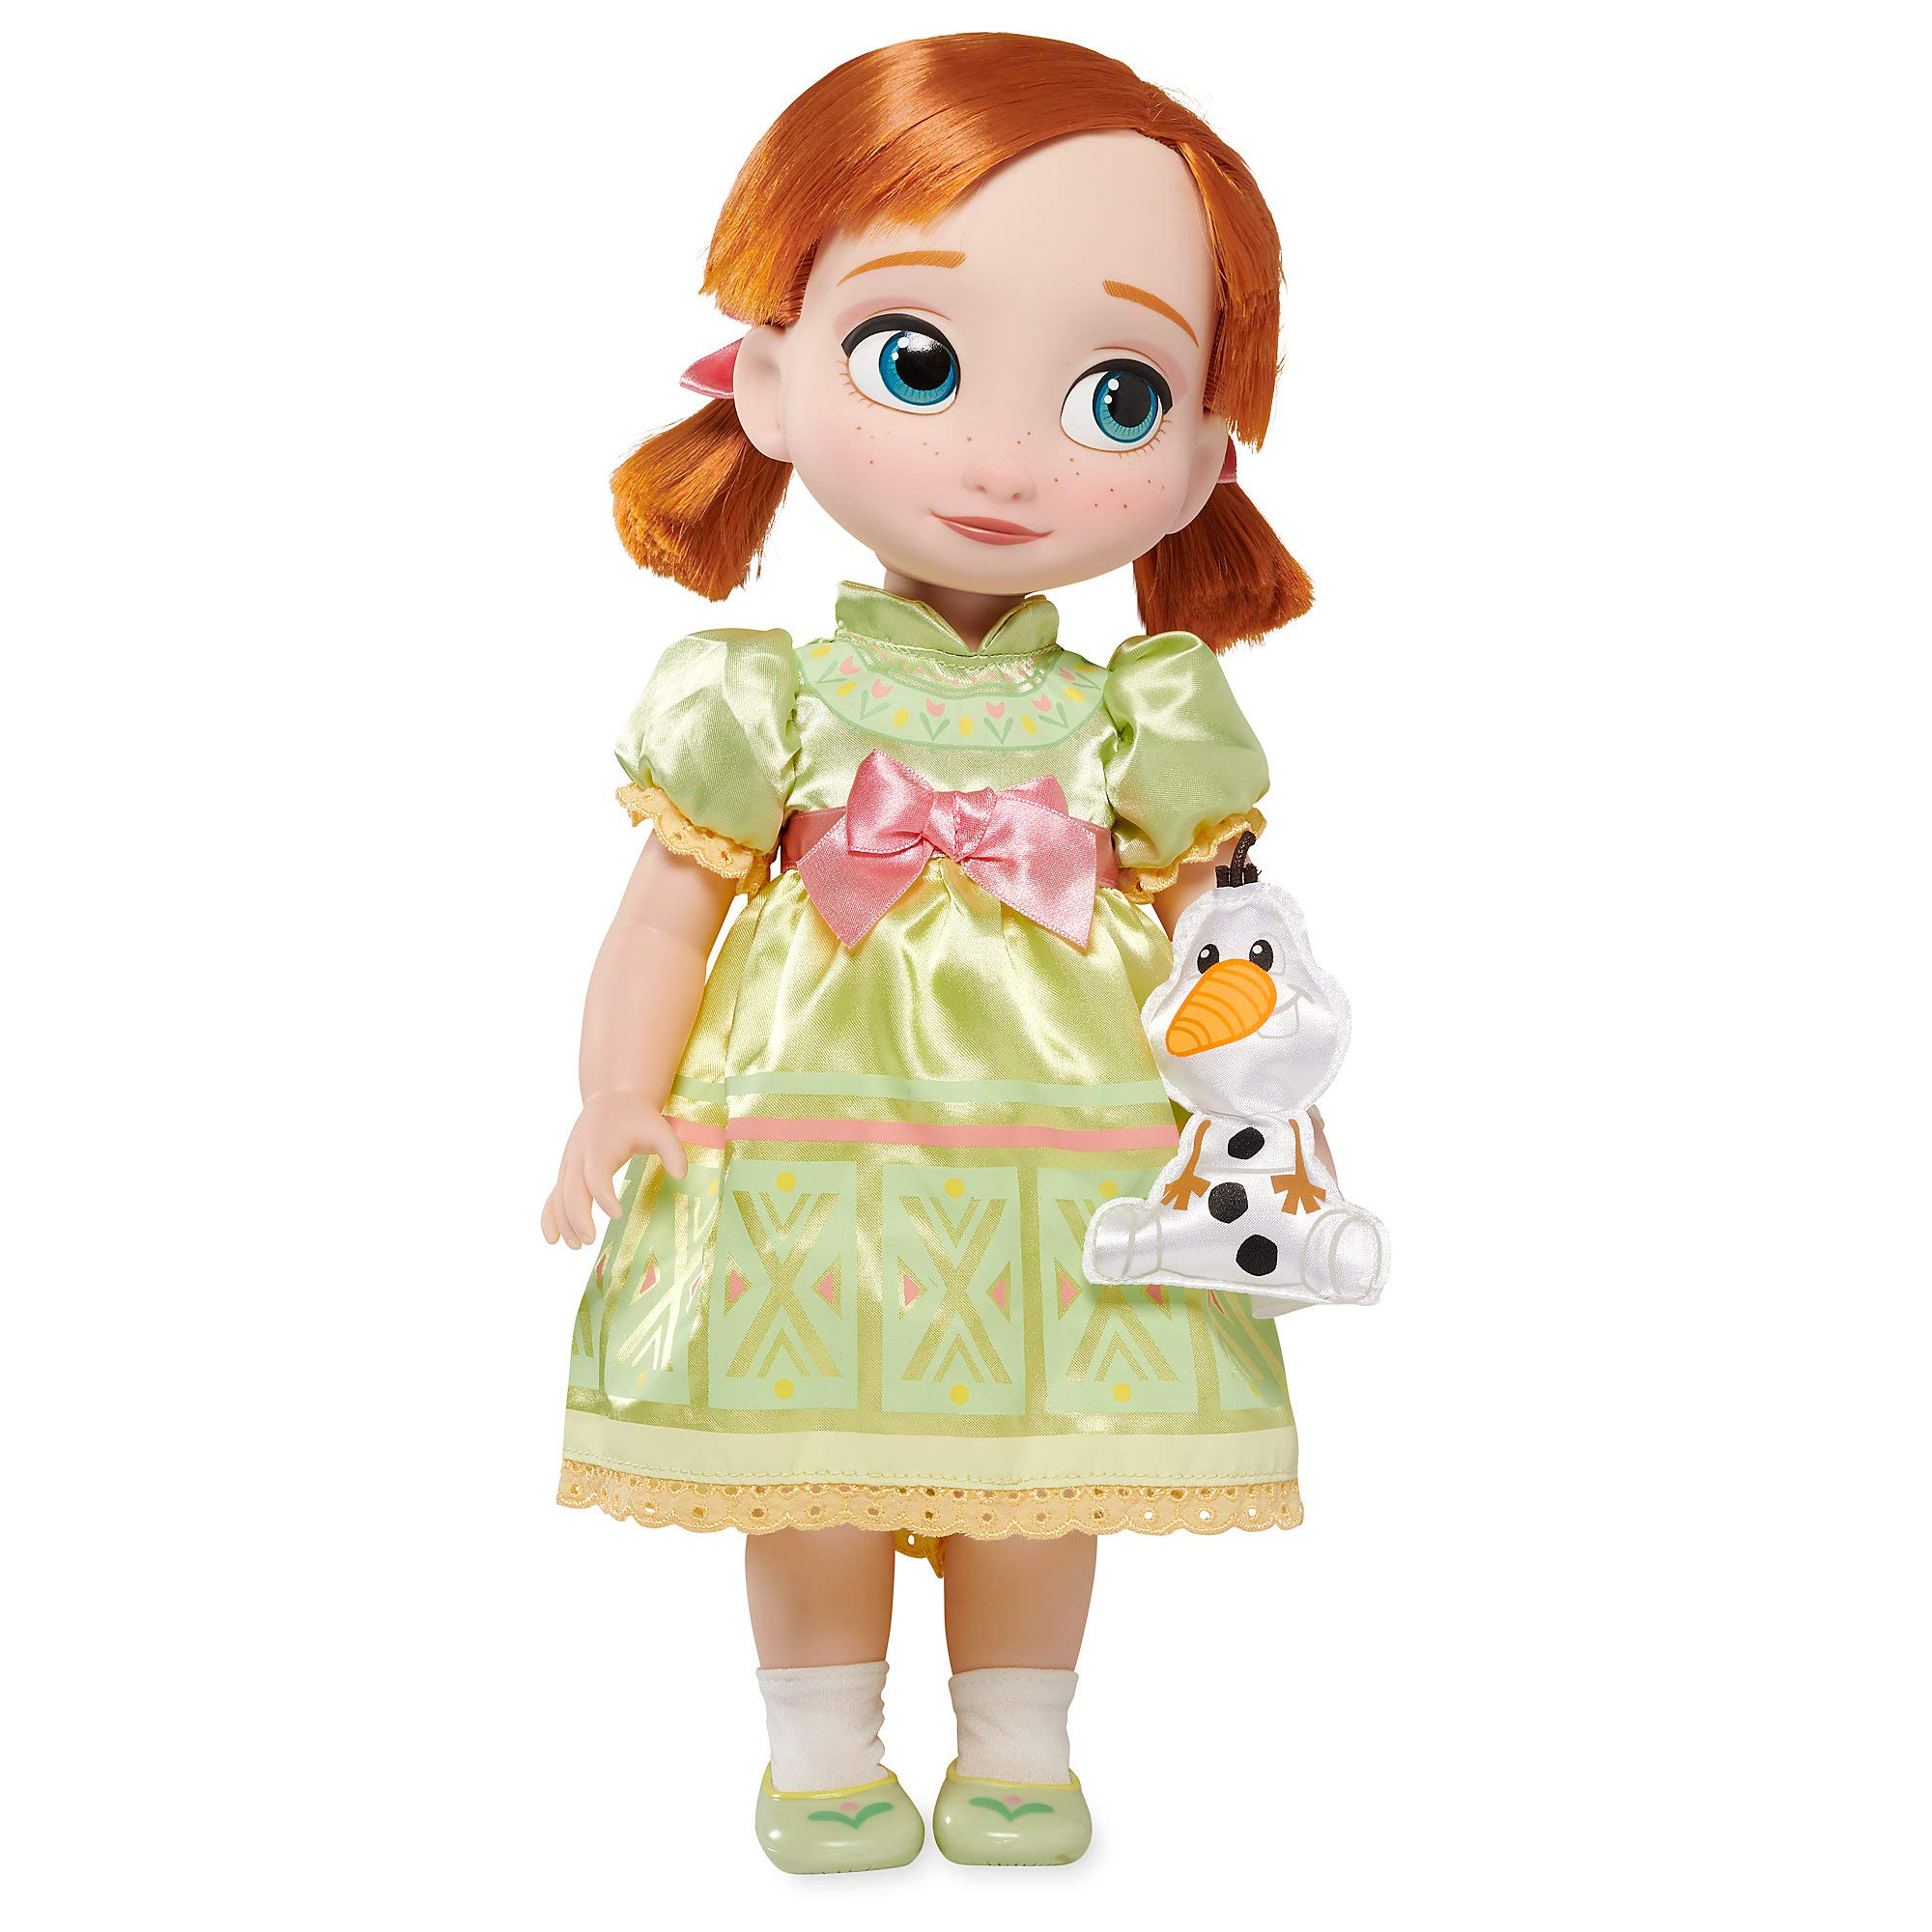 Disney Animators' Collection Anna Doll – Frozen – 16 Inch